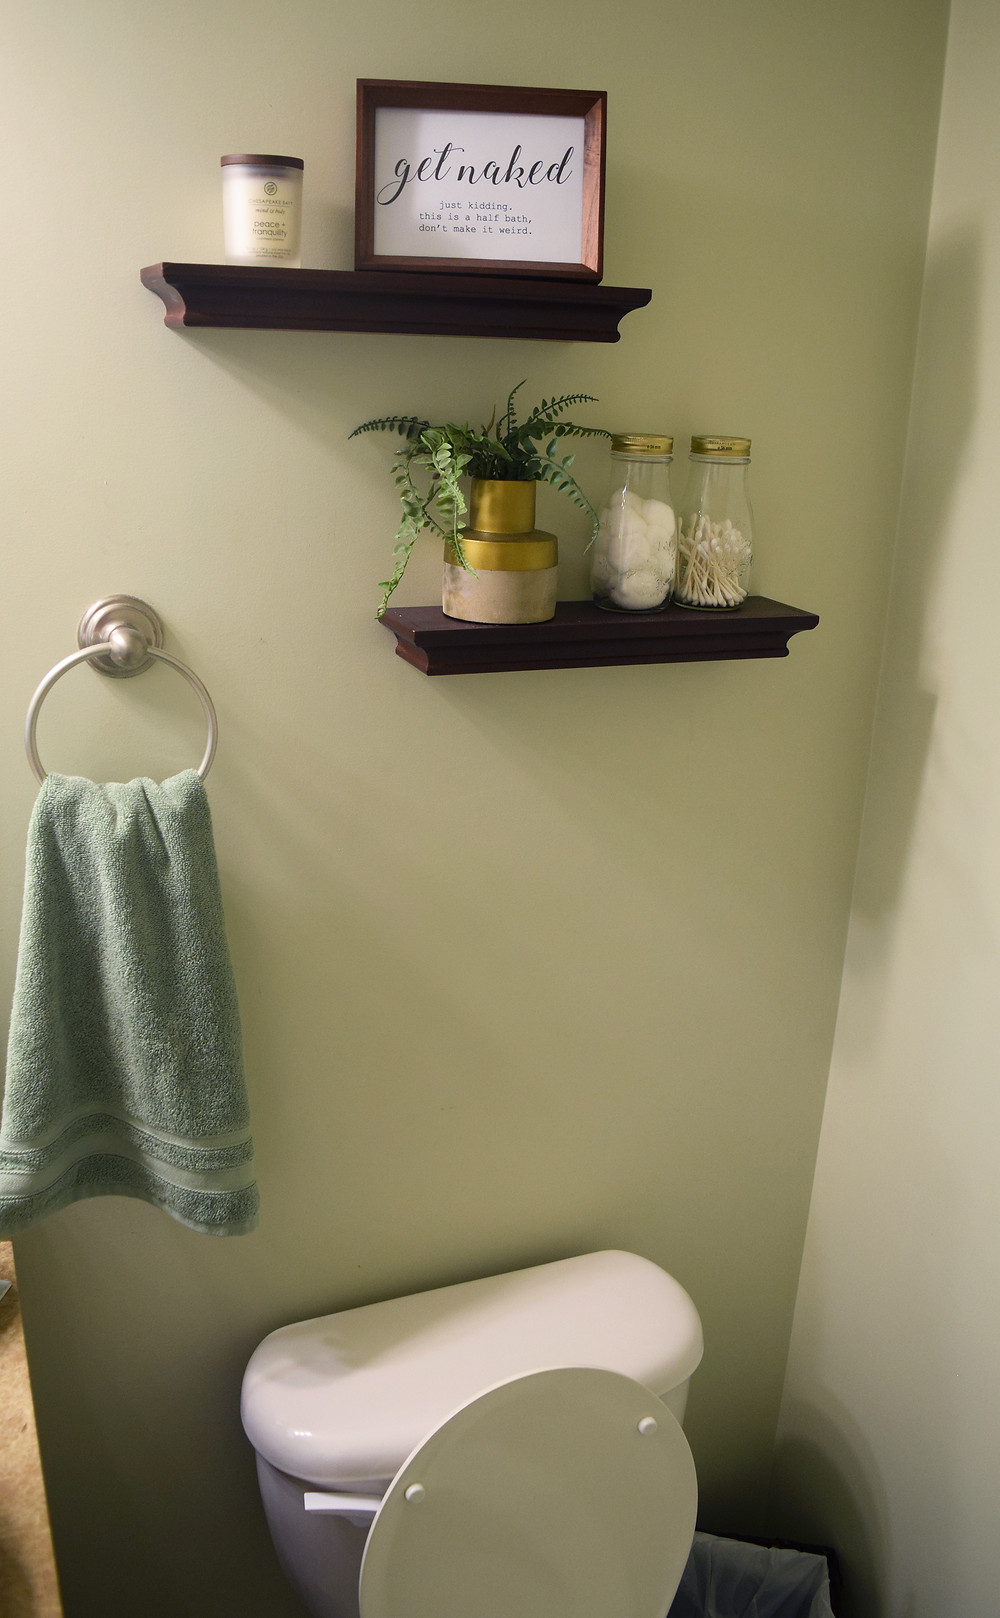 Two floating shelves are above the toilet, with decor on each shelf and a towel ring shown to the left